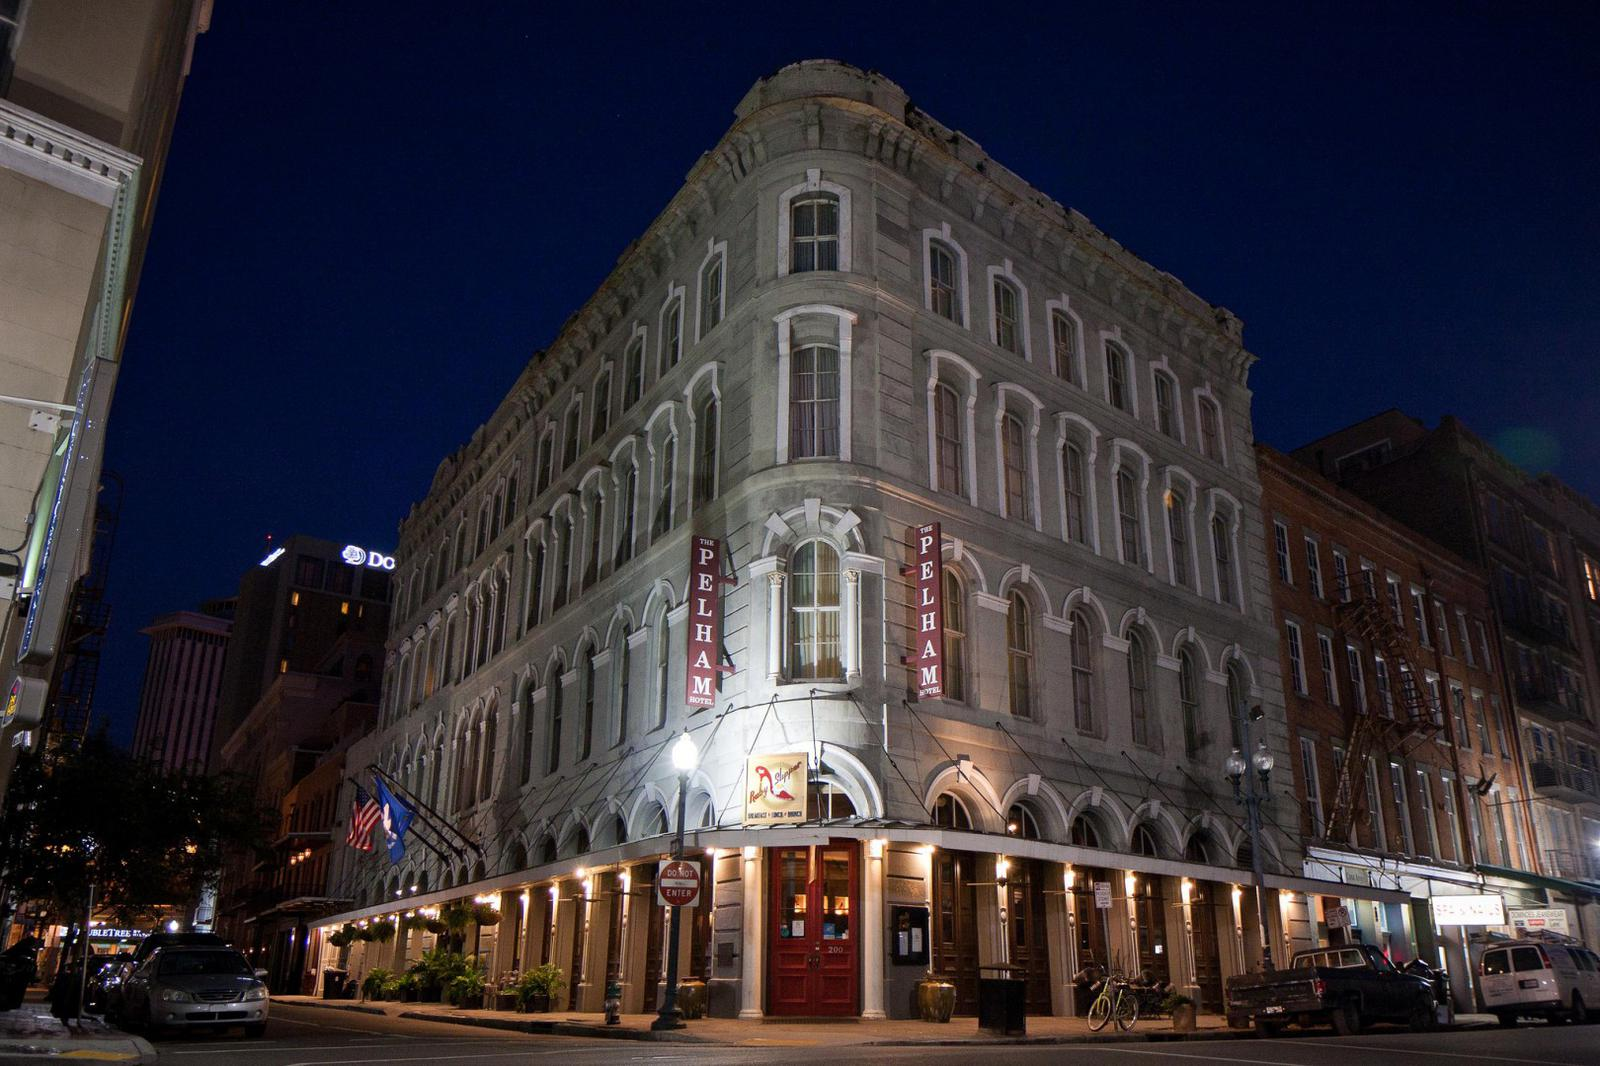 Historic New Orleans hotel the Pelham